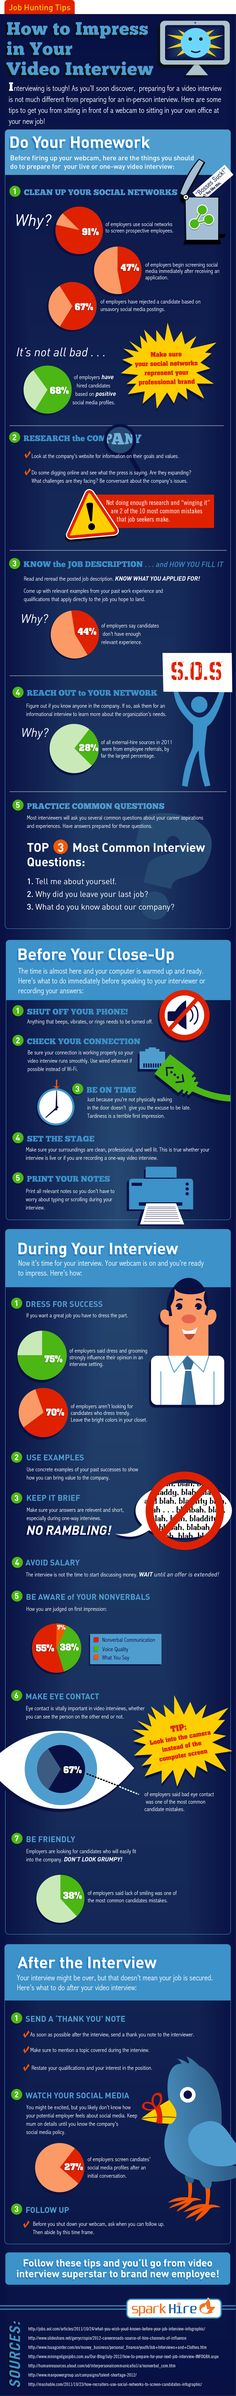 How to Impress Potential Employers in a Video #Interview #careers